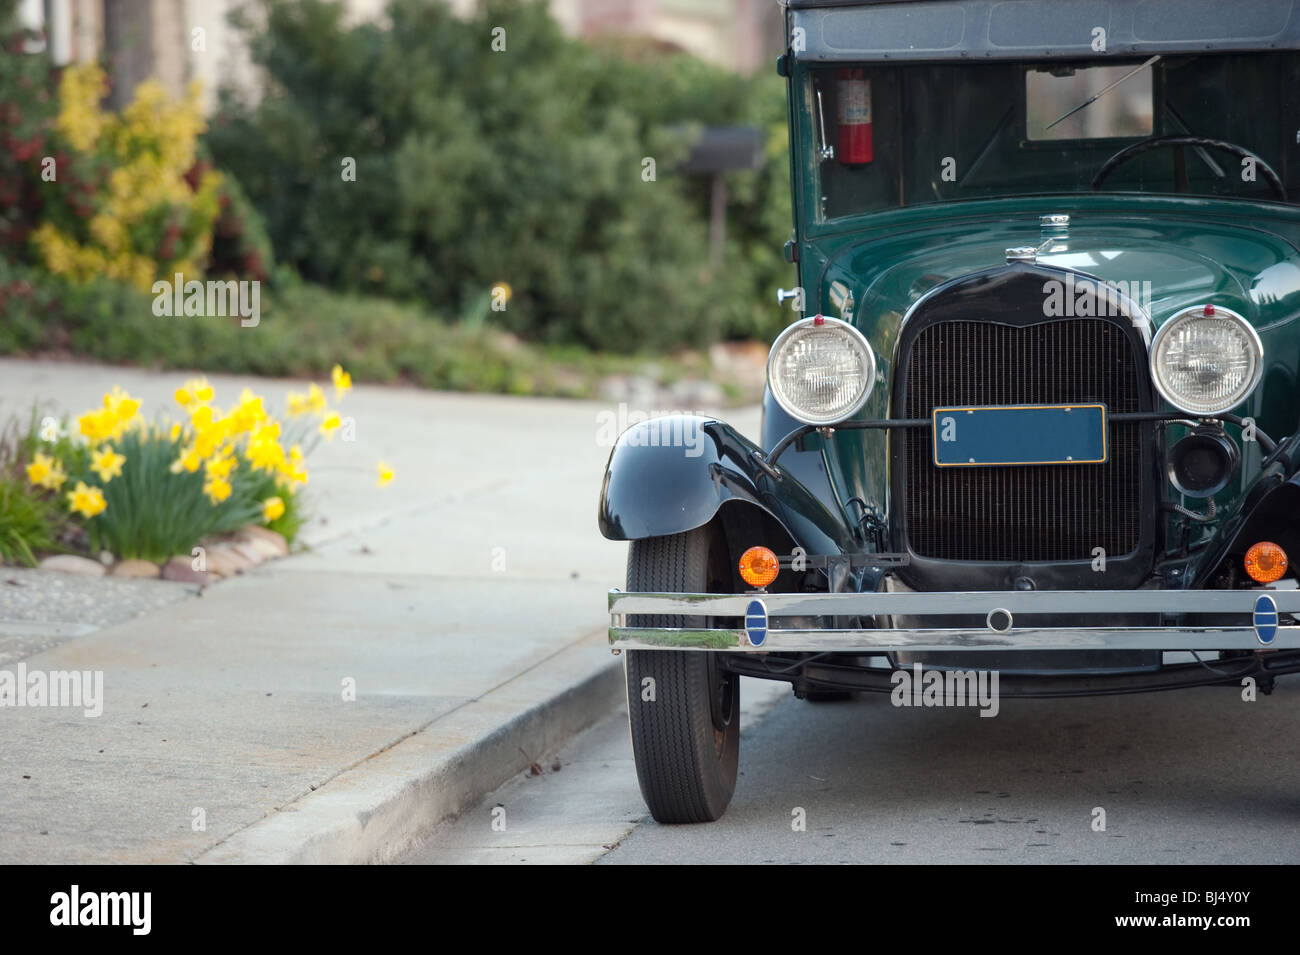 car from the past parked by the curb - Stock Image